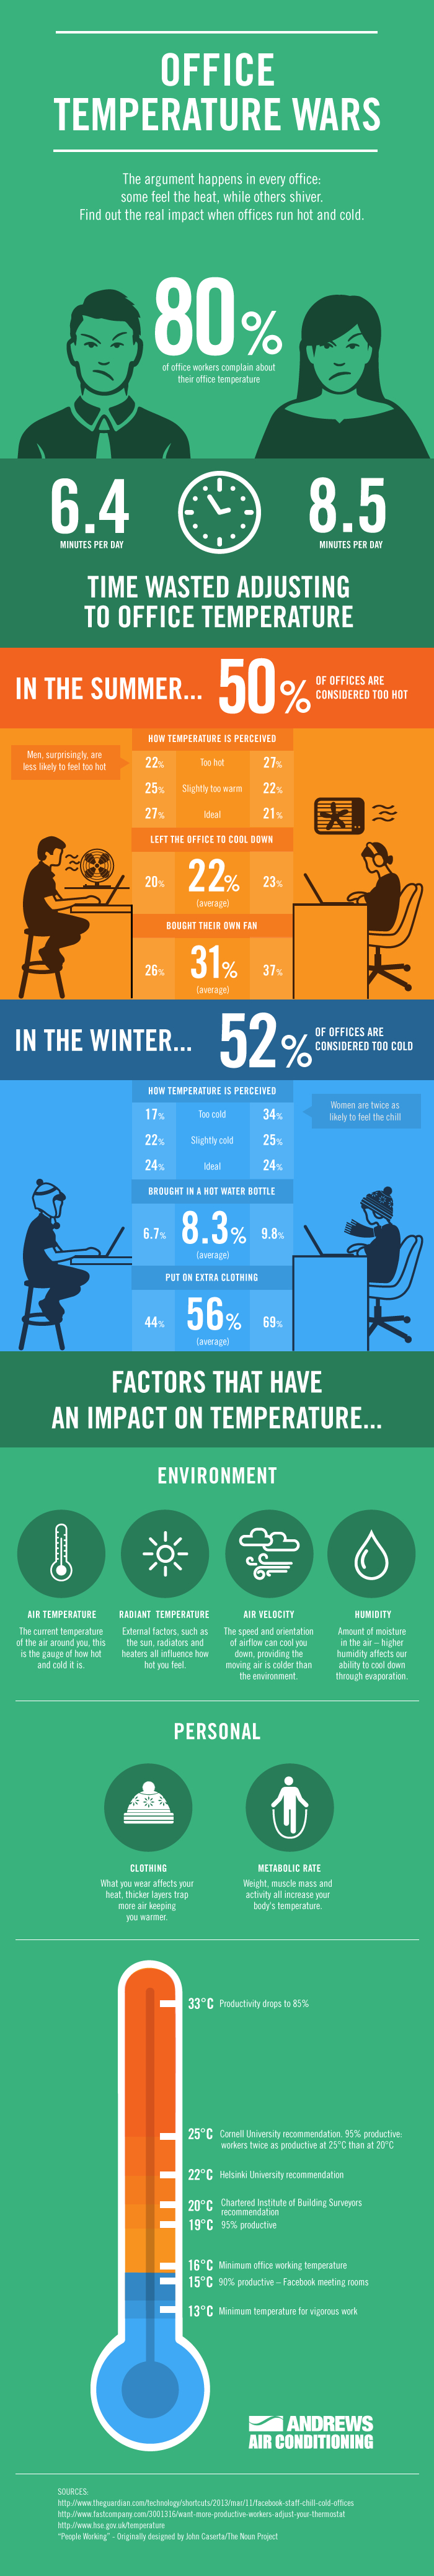 Survey Results: Is Your Office Too Hot Or Too Cold